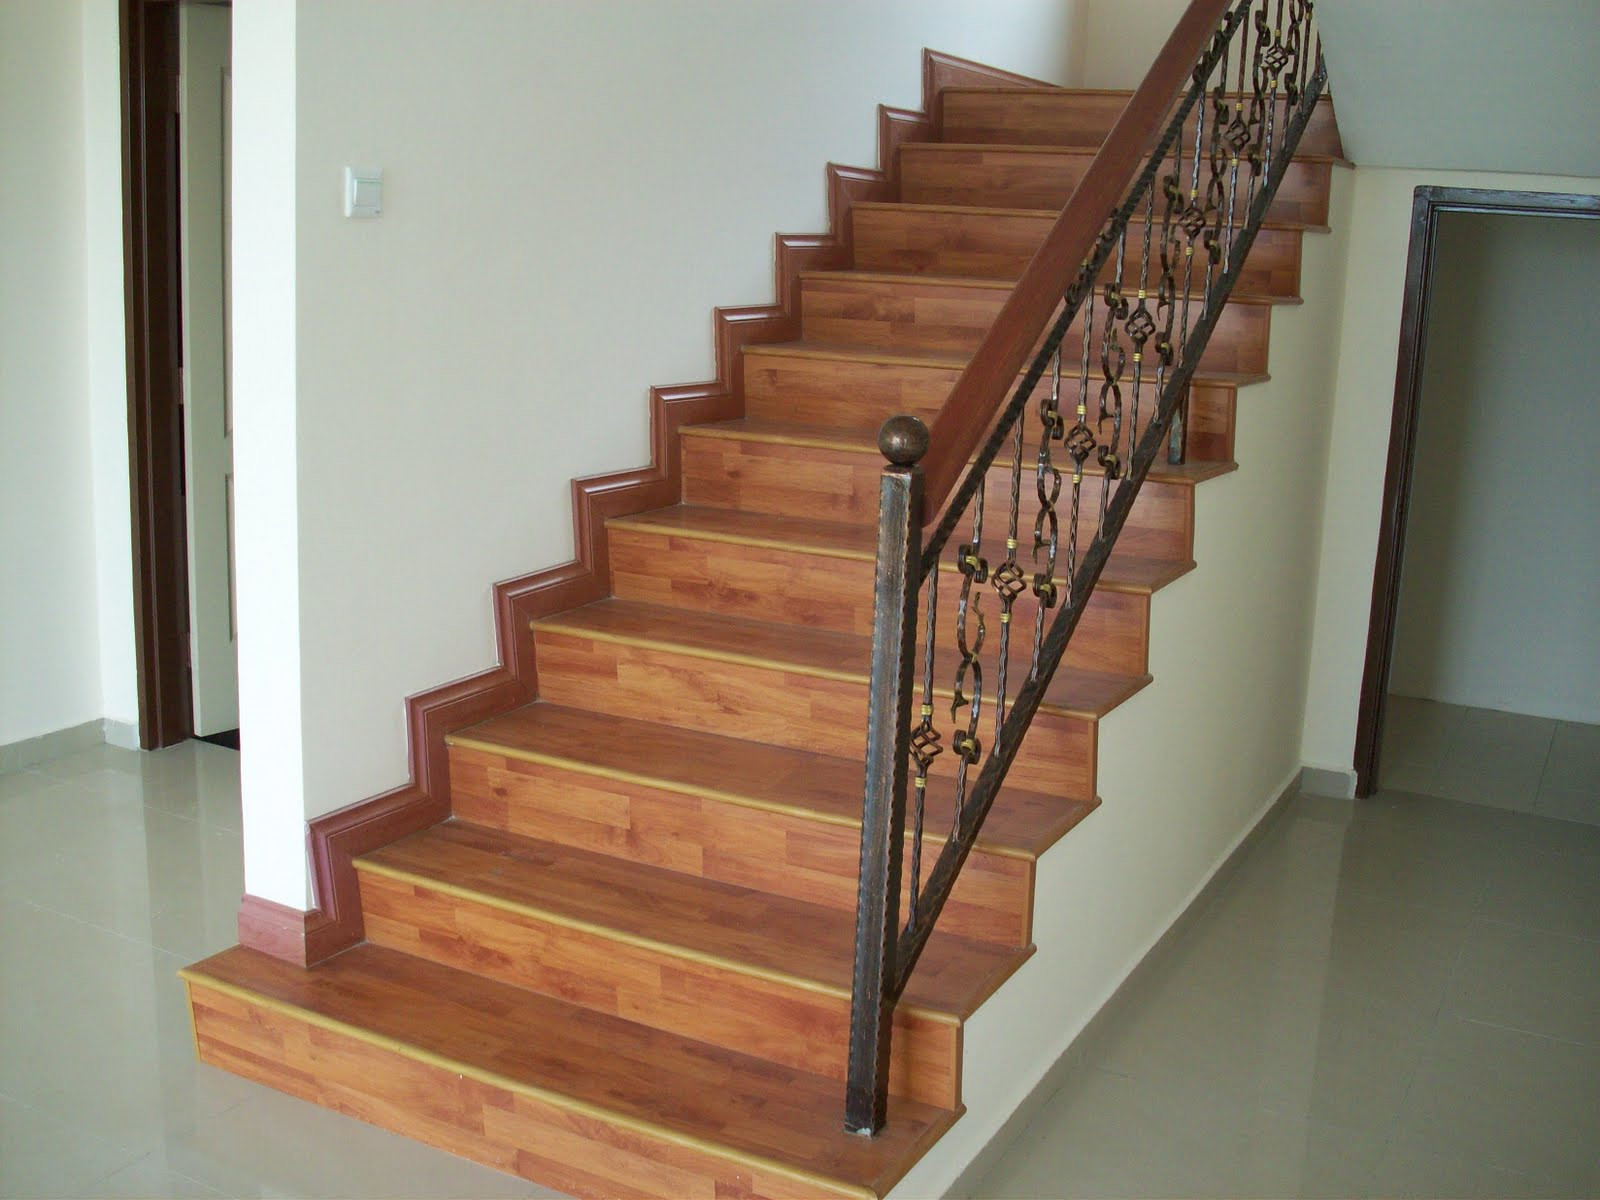 hardwood flooring installation mississauga of the wood maker page 4 wood wallpaper regarding how to installing laminate flooring stairs charter home ideas ideas of wood flooring on stairs